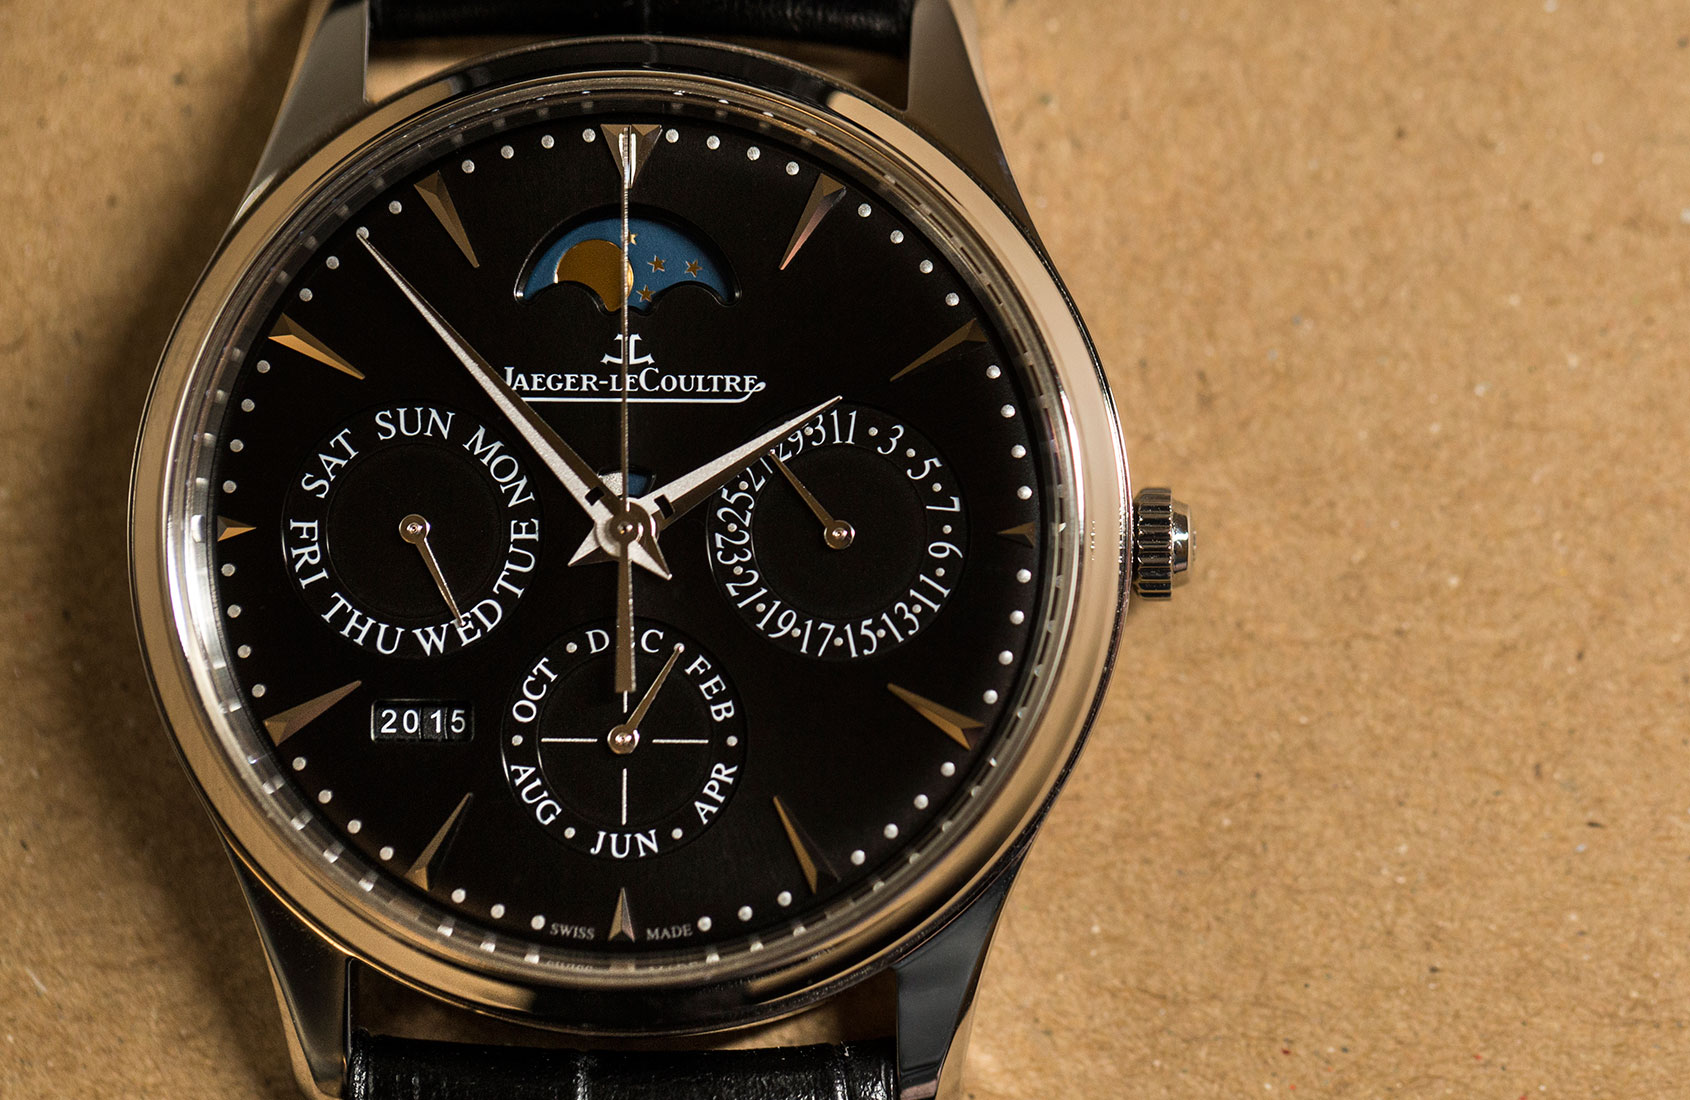 57c7308c90ab9 Jaeger-LeCoultre Master Ultra Thin Perpetual Calendar – Hands-on Review